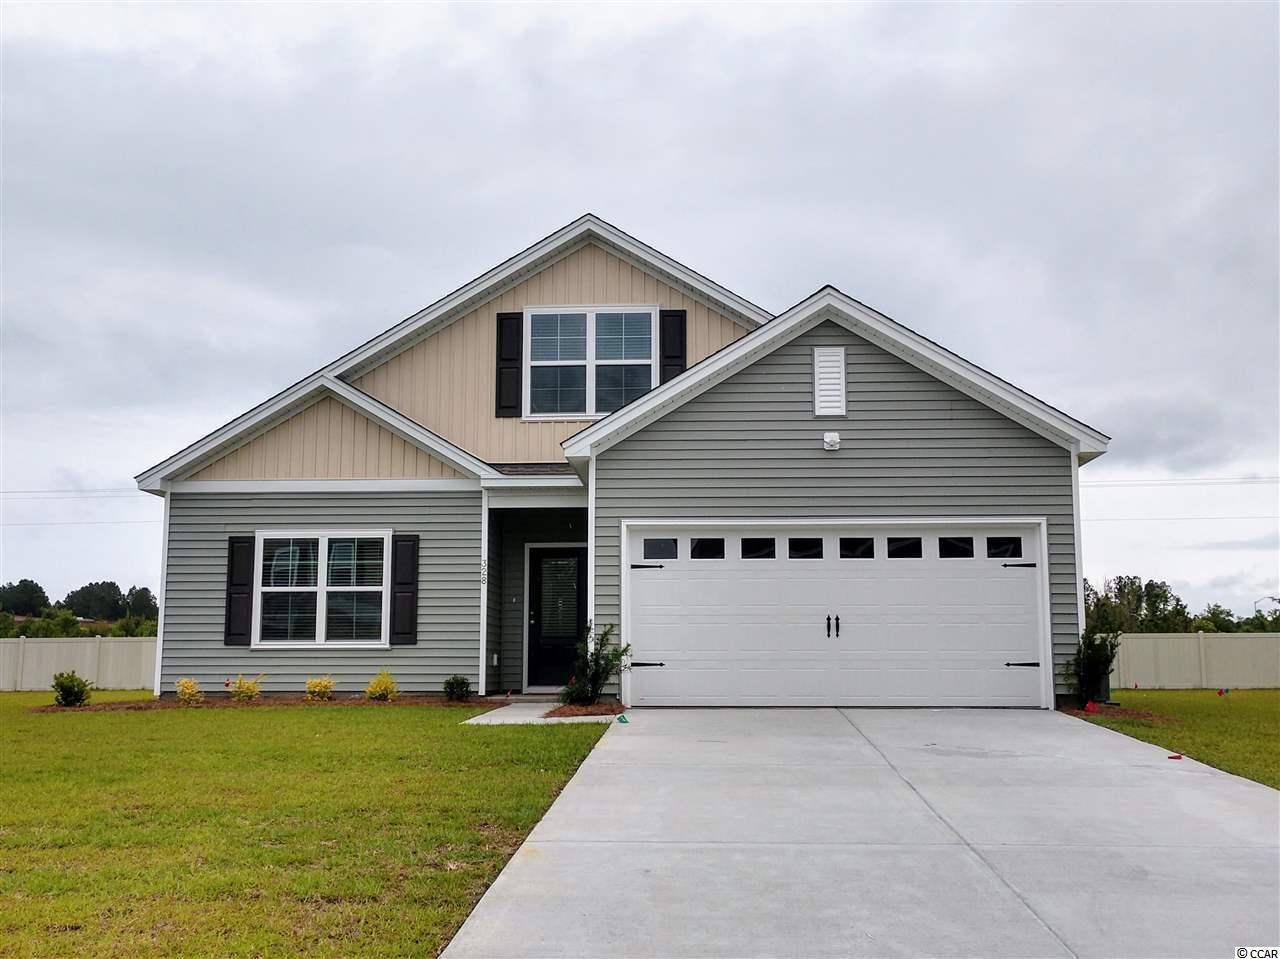 """Natural Gas Community! Great location - easy access to Conway and Myrtle Beach! This is our popular Dorchester plan, with formal dining, Bonus Room and Covered Patio! Estimated completion is by end of July 2020. This home is loaded with all the extras people want: Glass front entry door; SS Gas kitchen appliance package; Granite vanities; Luxury Vinyl Plank flooring; Vaulted ceilings in Family Room and Kitchen; Grill Patio; Fully sodded yard with irrigation system; and more! Included features: Architectural roof shingles, smooth ceilings/walls, 9' ceilings 1st floor,granite in kitchen, 36"""" cabinets, tankless gas hot-water, gas heat. Ask about our current incentives for your buyer! We are USDA qualified – great for first time home-buyers. Come see the Mungo Homes quality and value and why we stand out from the rest! Photos are of a similar home."""